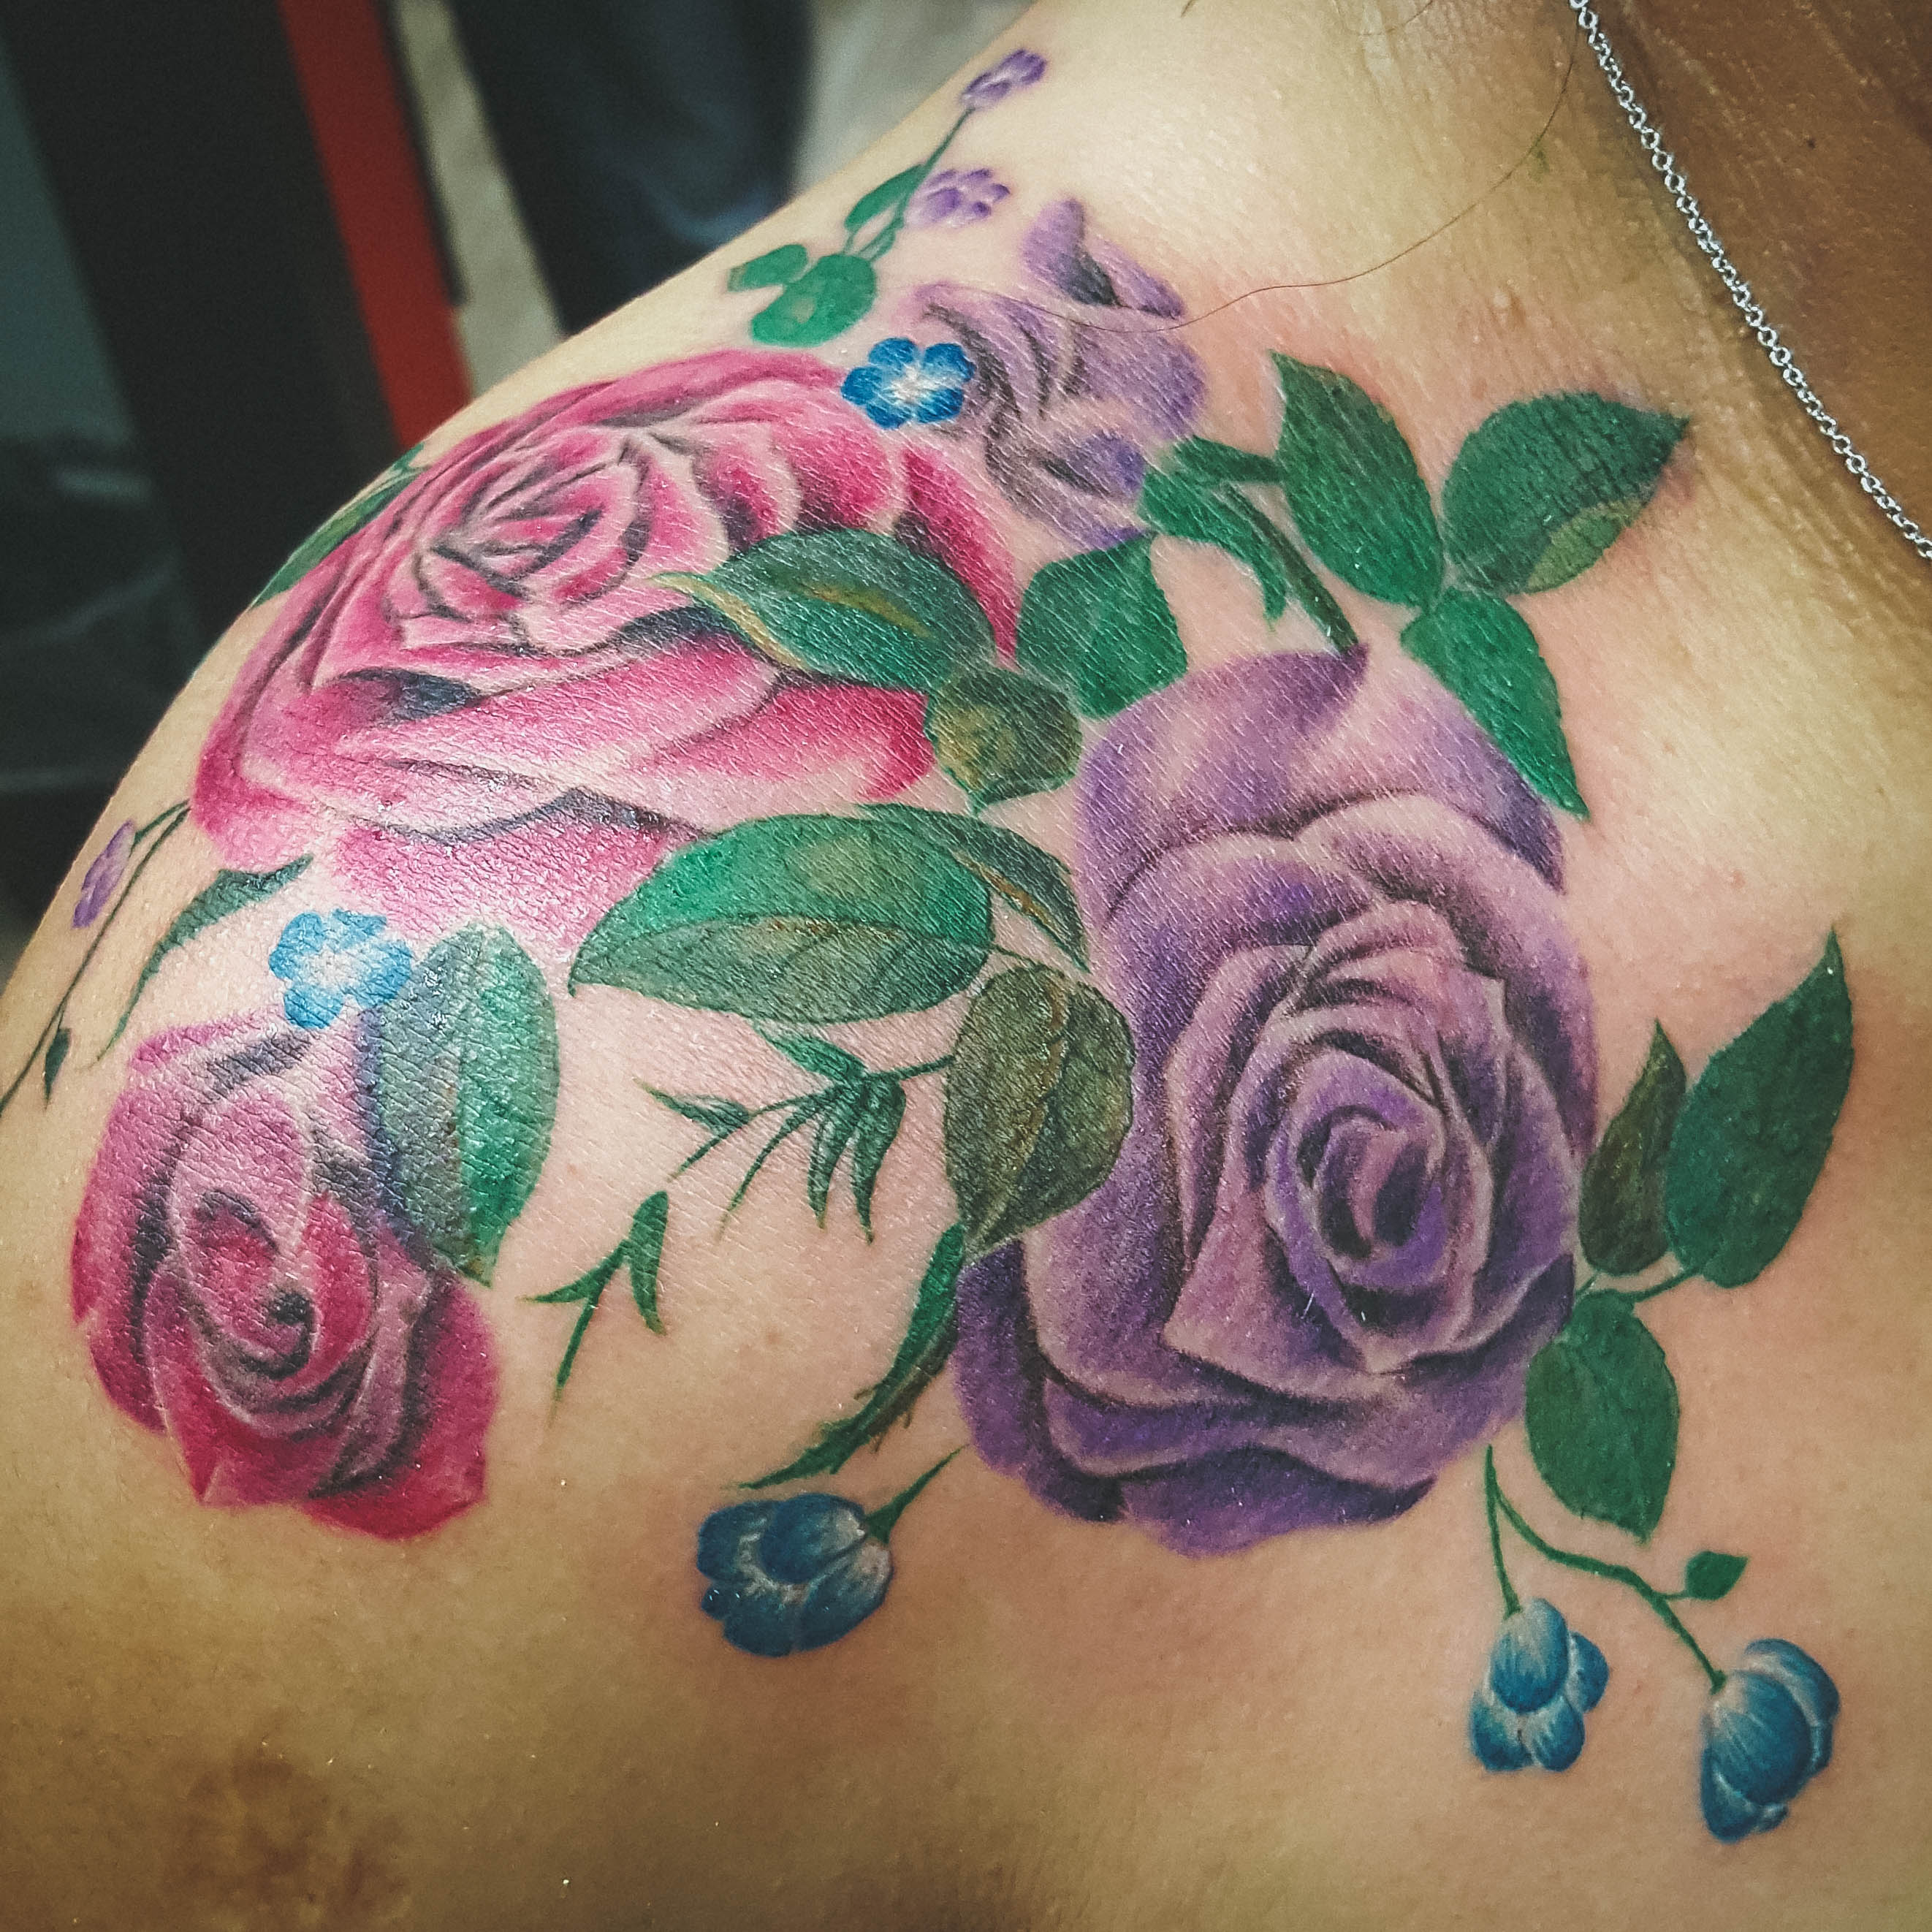 Q Tattoo in Huntington Beach - Quan - should tattoo floral